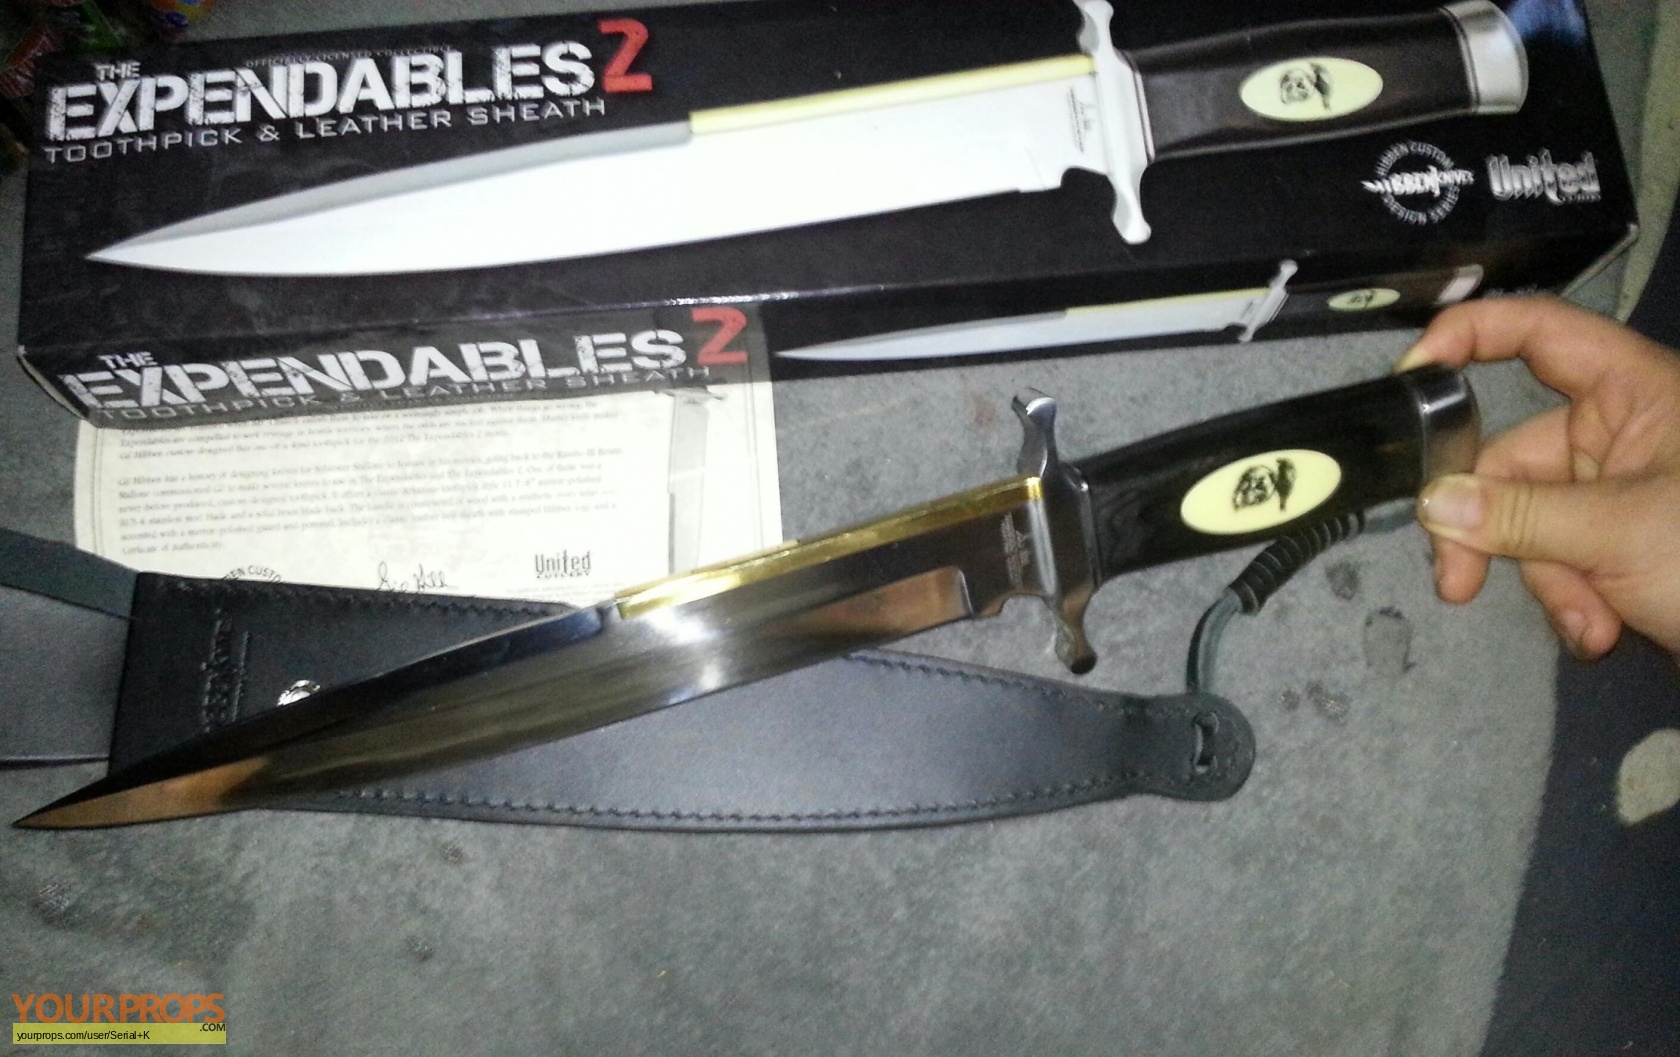 the expendables 2 expendables 2 toothpick knife united cutlery